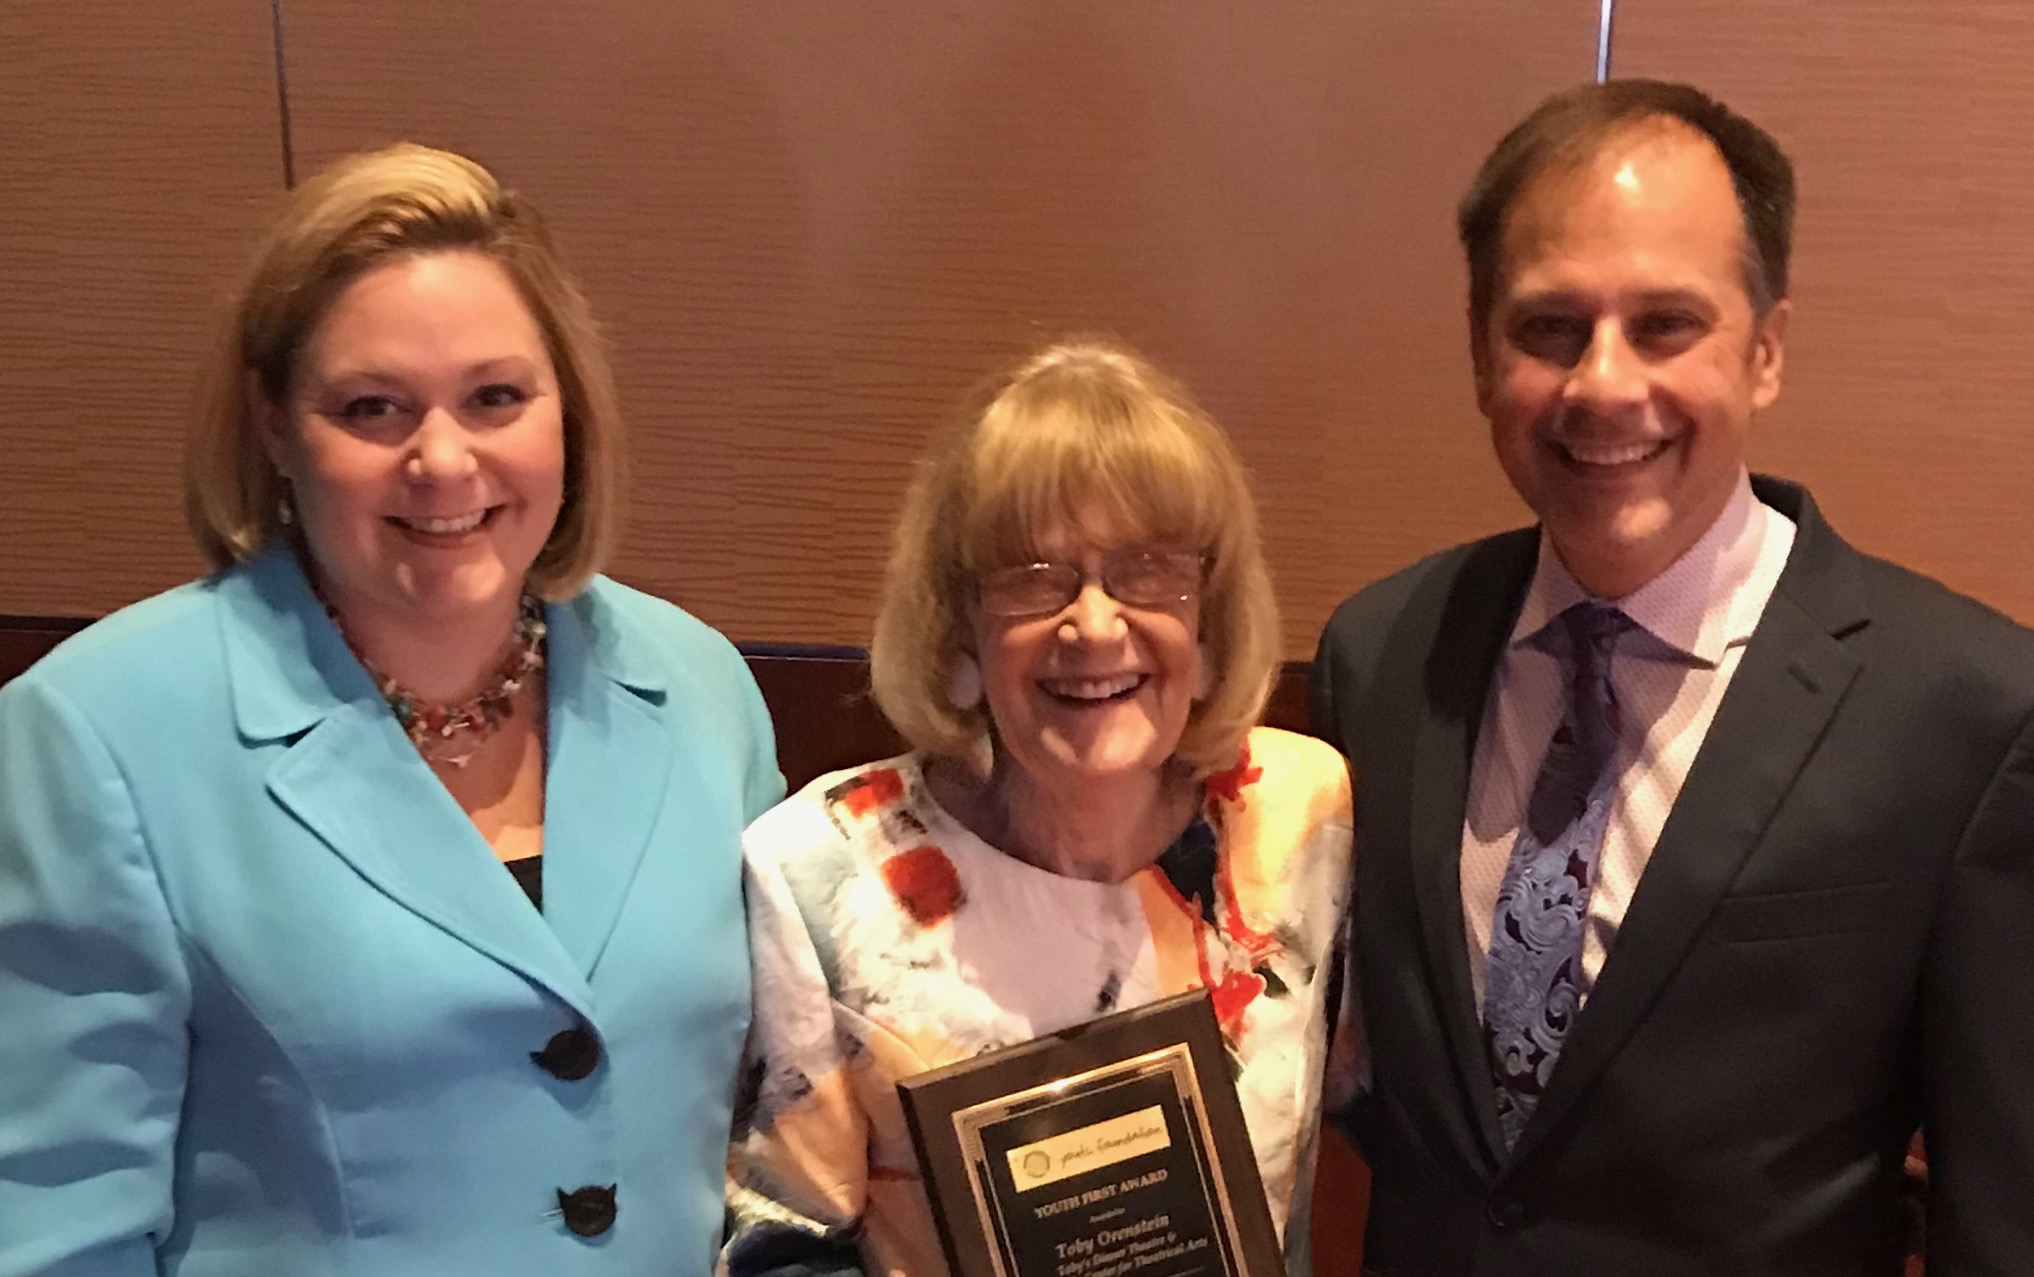 Toby Orenstein with Cheryl Clemens-Everidge and Mark Minnick receiving her Youth First Award from the SYTA Foundation 2018